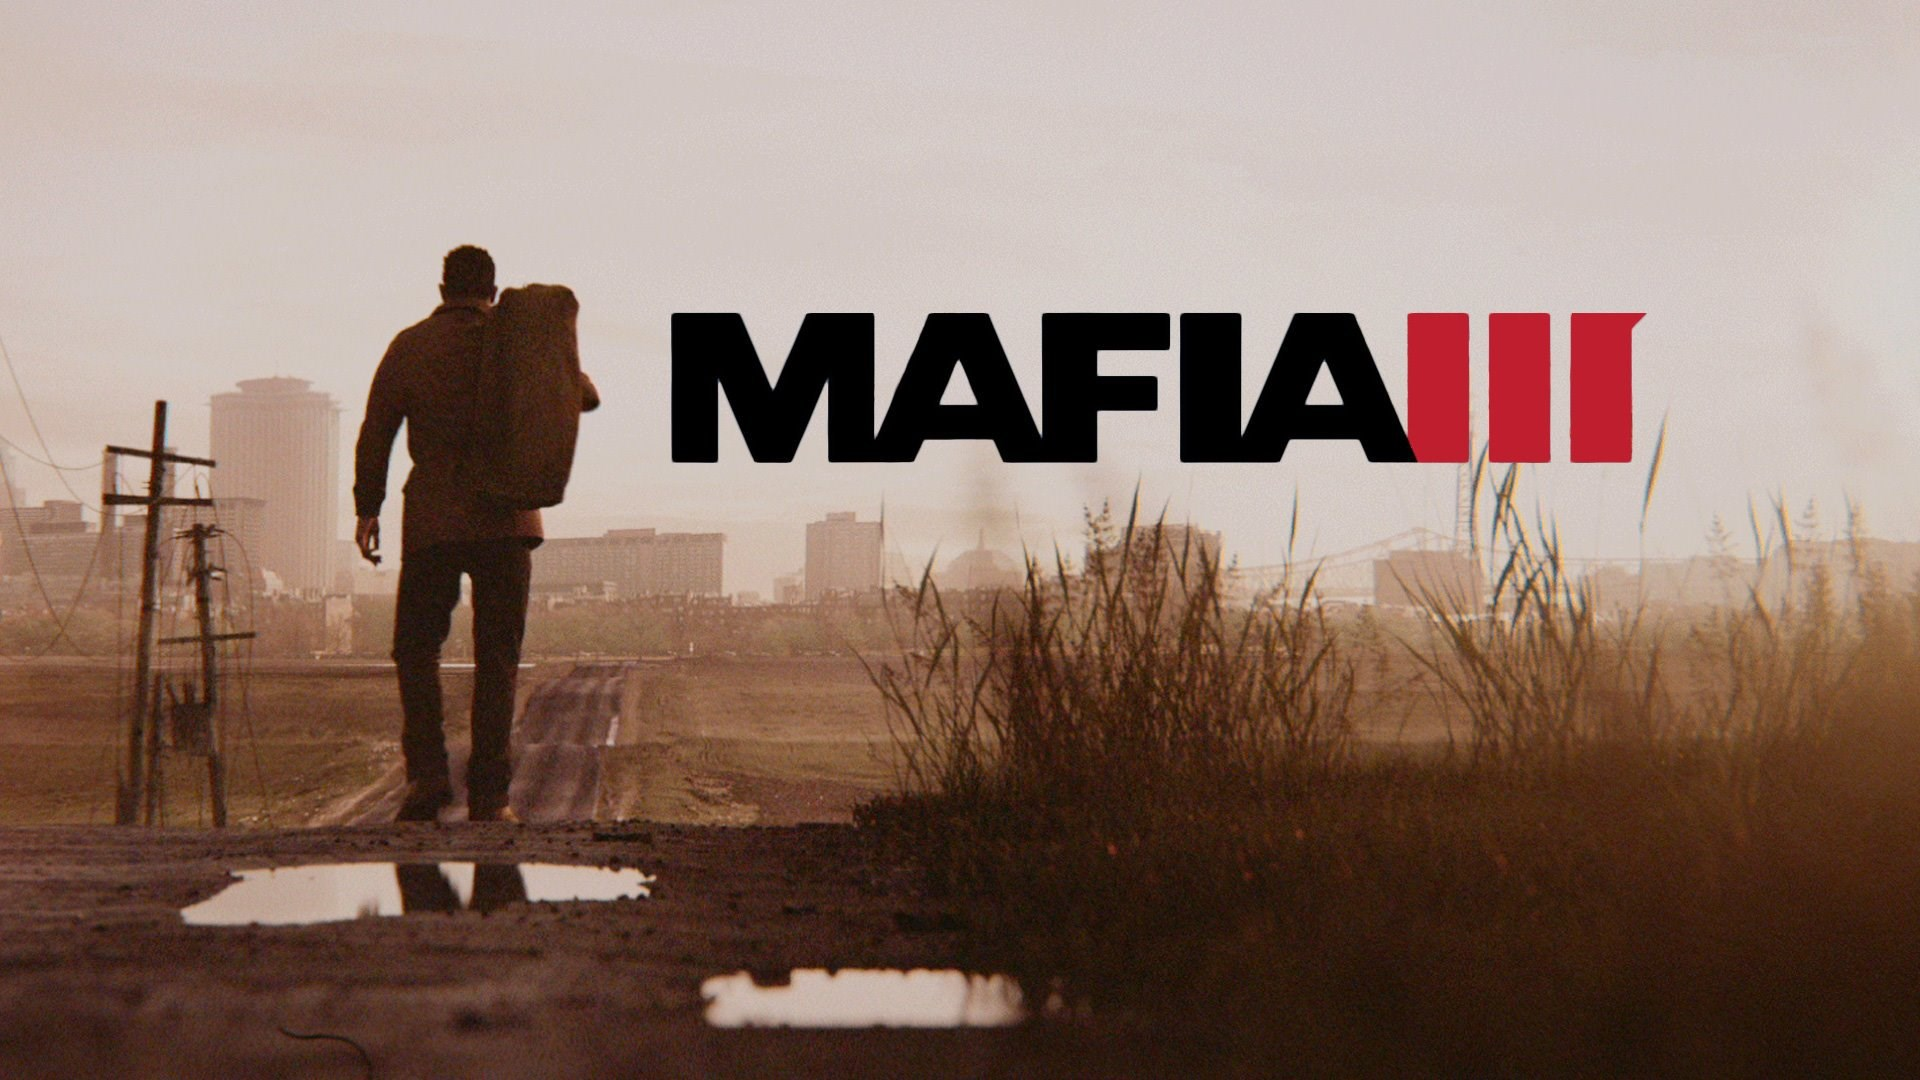 high-resolution-widescreen-mafia-Hampton-Walter-1920x1080-wallpaper-wp3406879